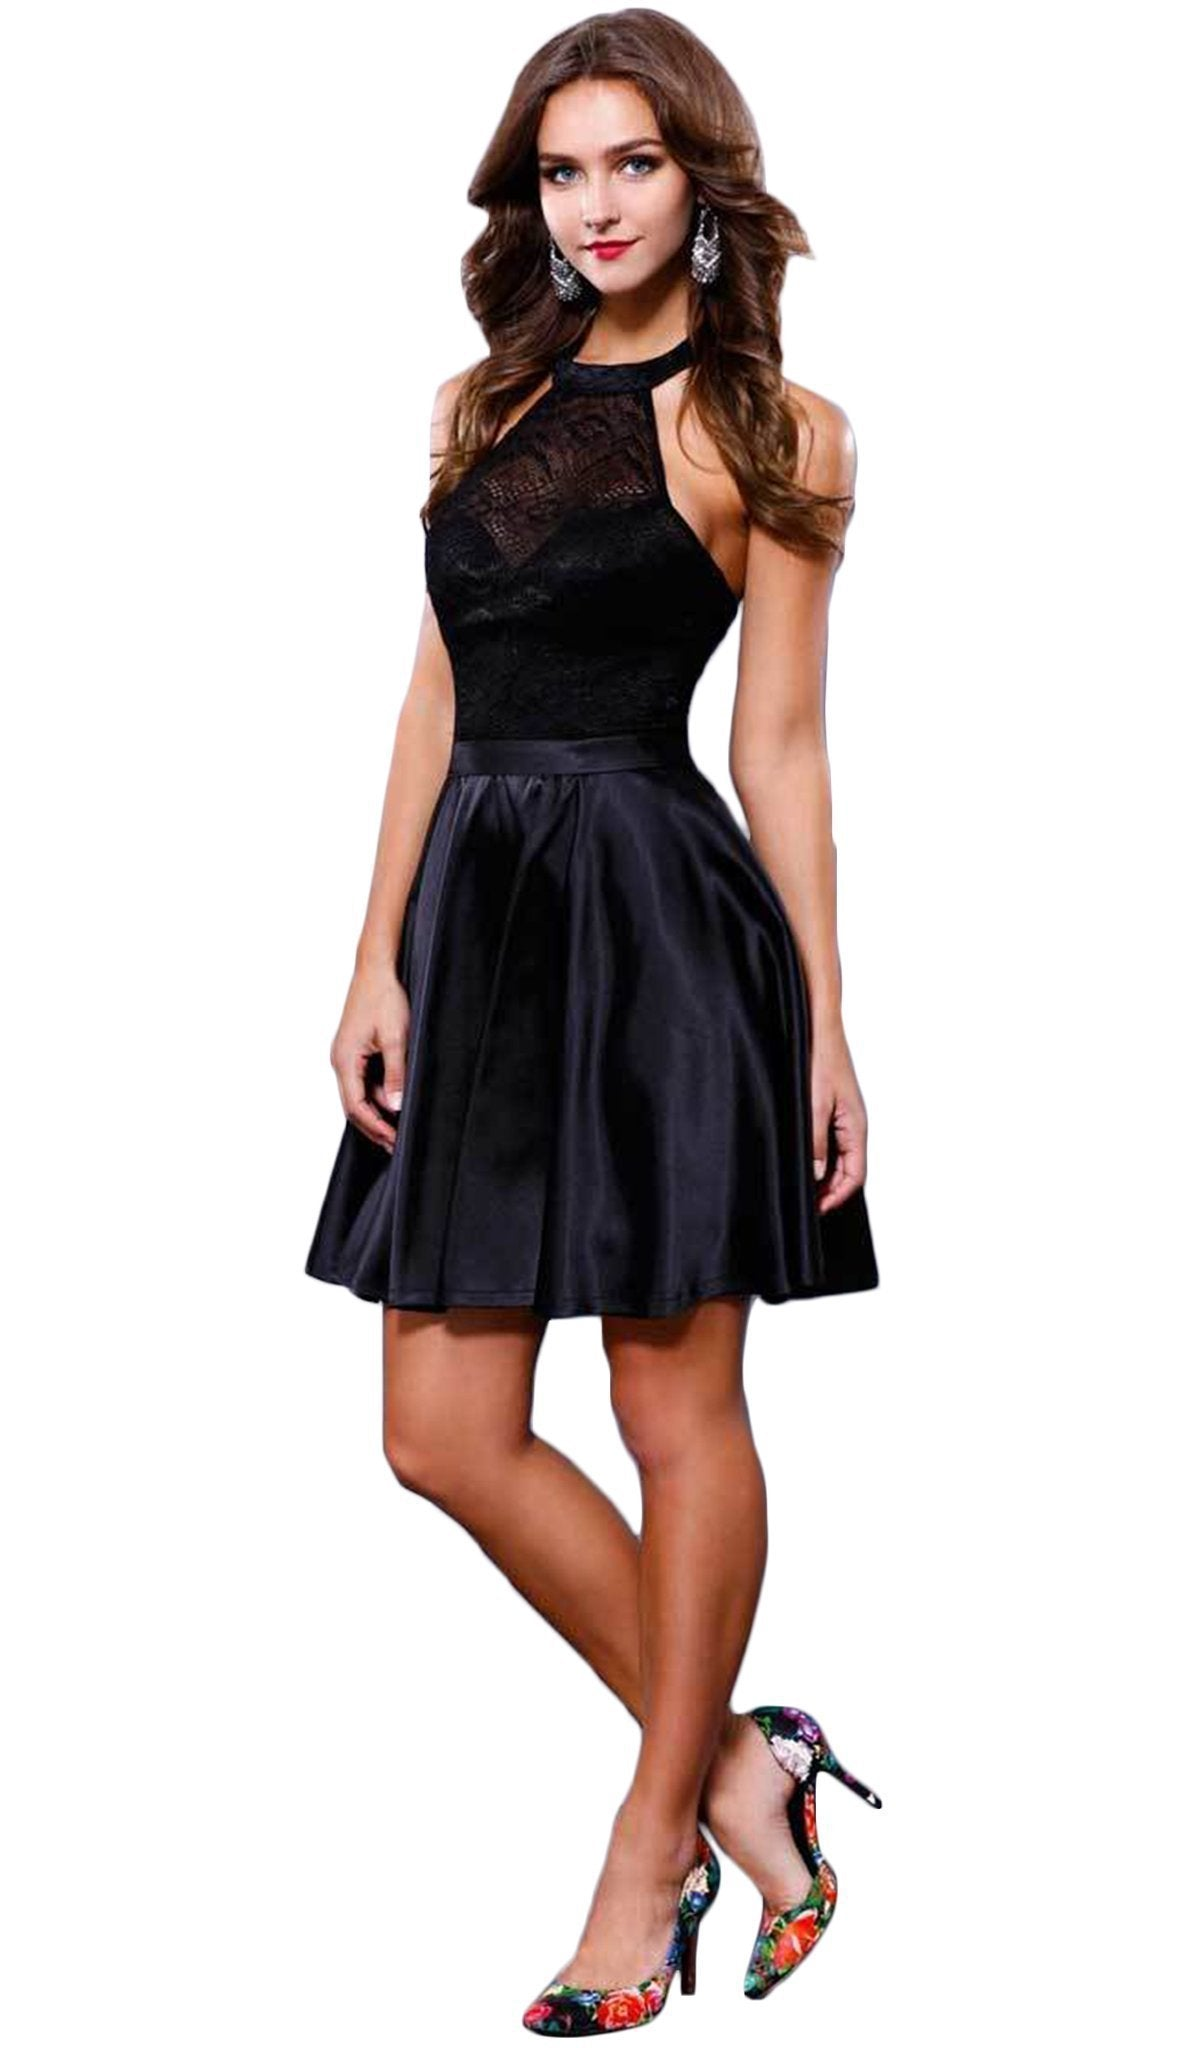 Nox Anabel - Lace Halter Short Prom Dress 6217SC